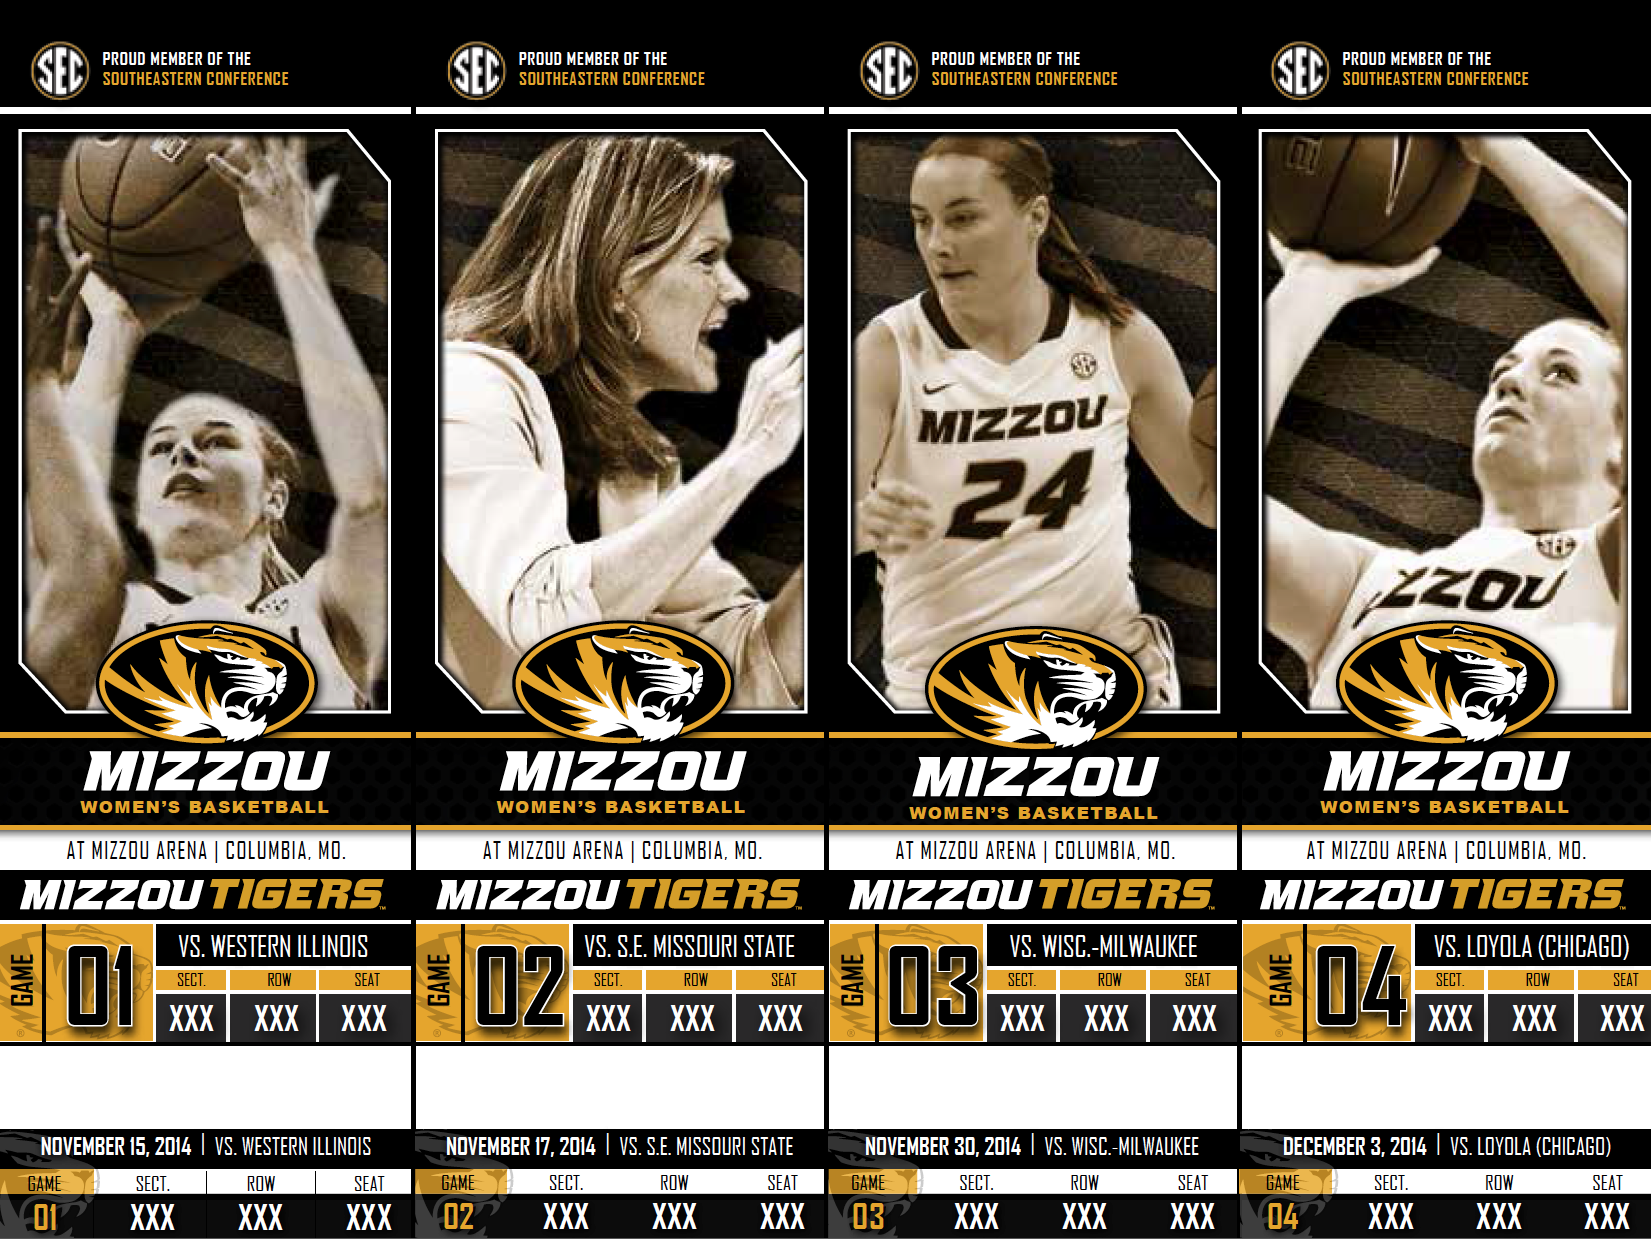 2014-2015 Mizzou Tigers Women's Basketball Season Tickets created and designed by JA Creative Group